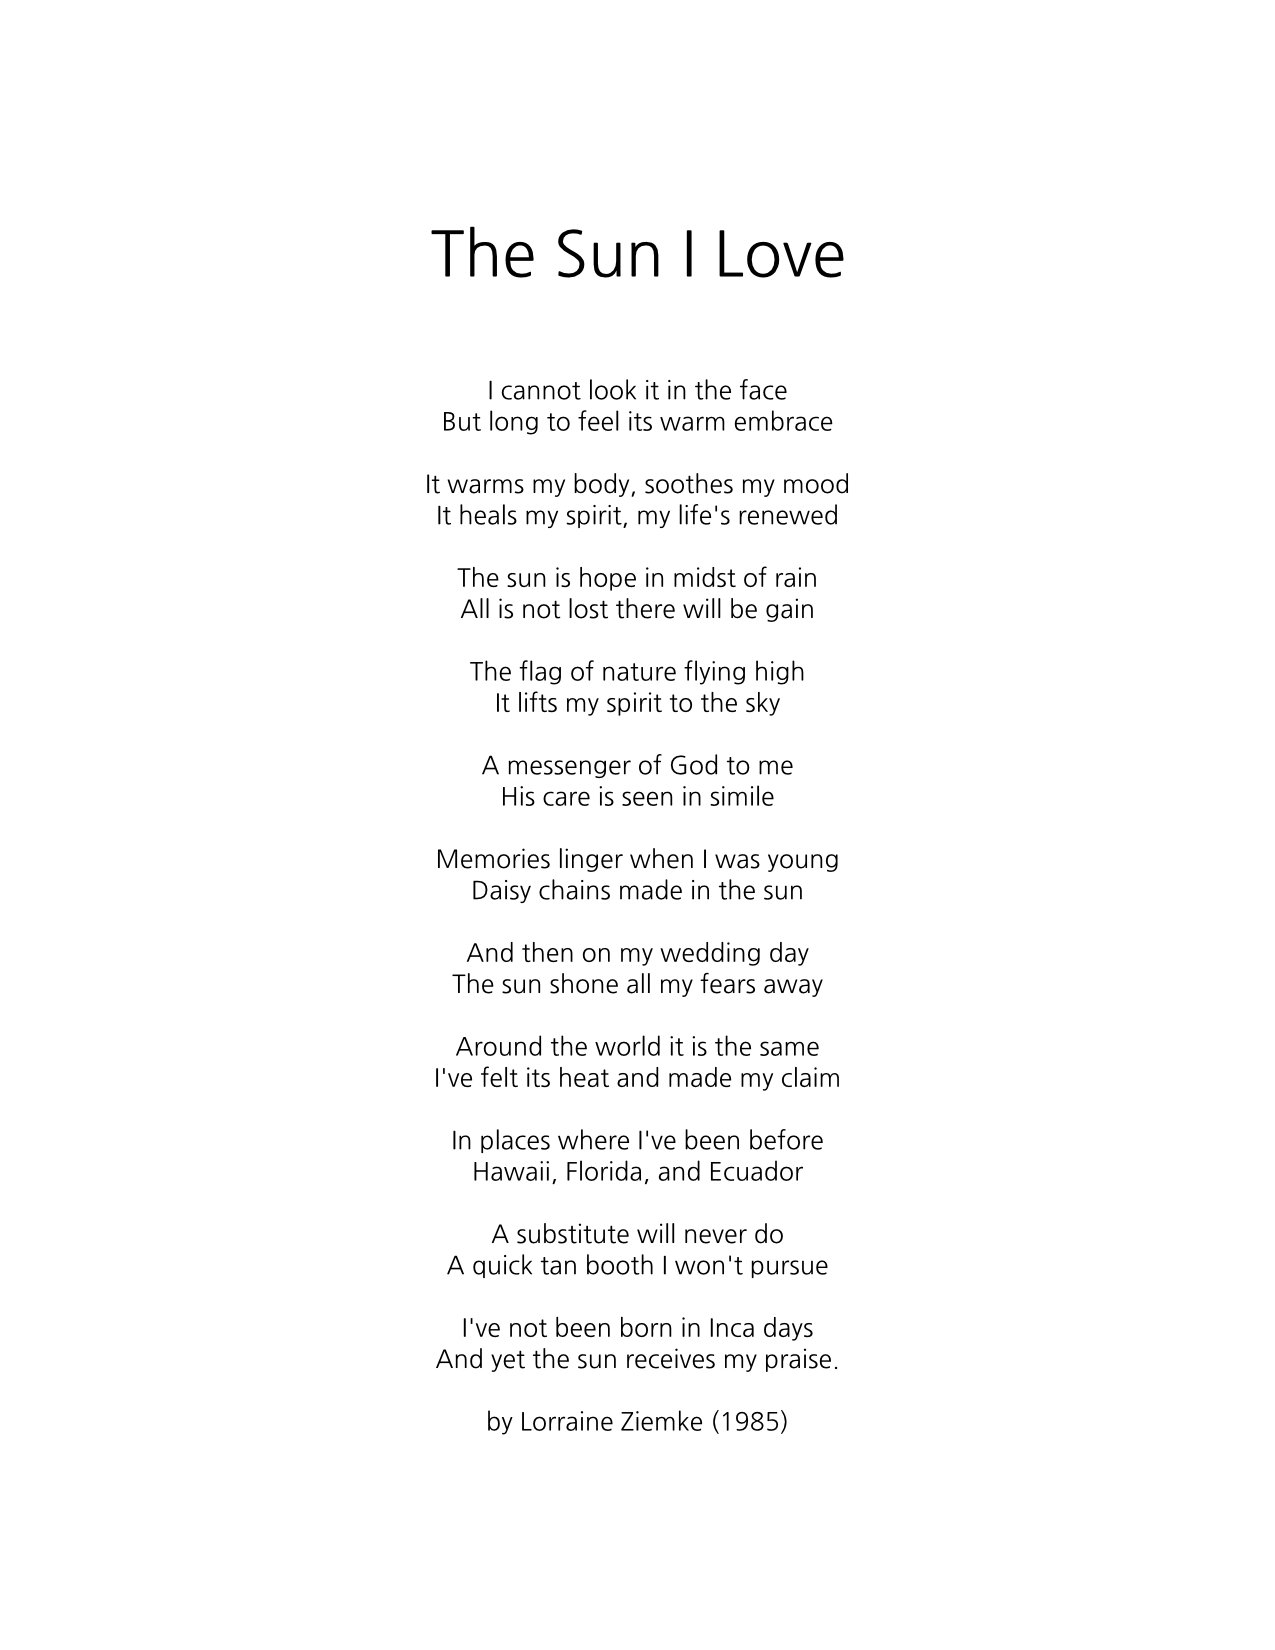 The Sun I Love by Lorraine Ziemke